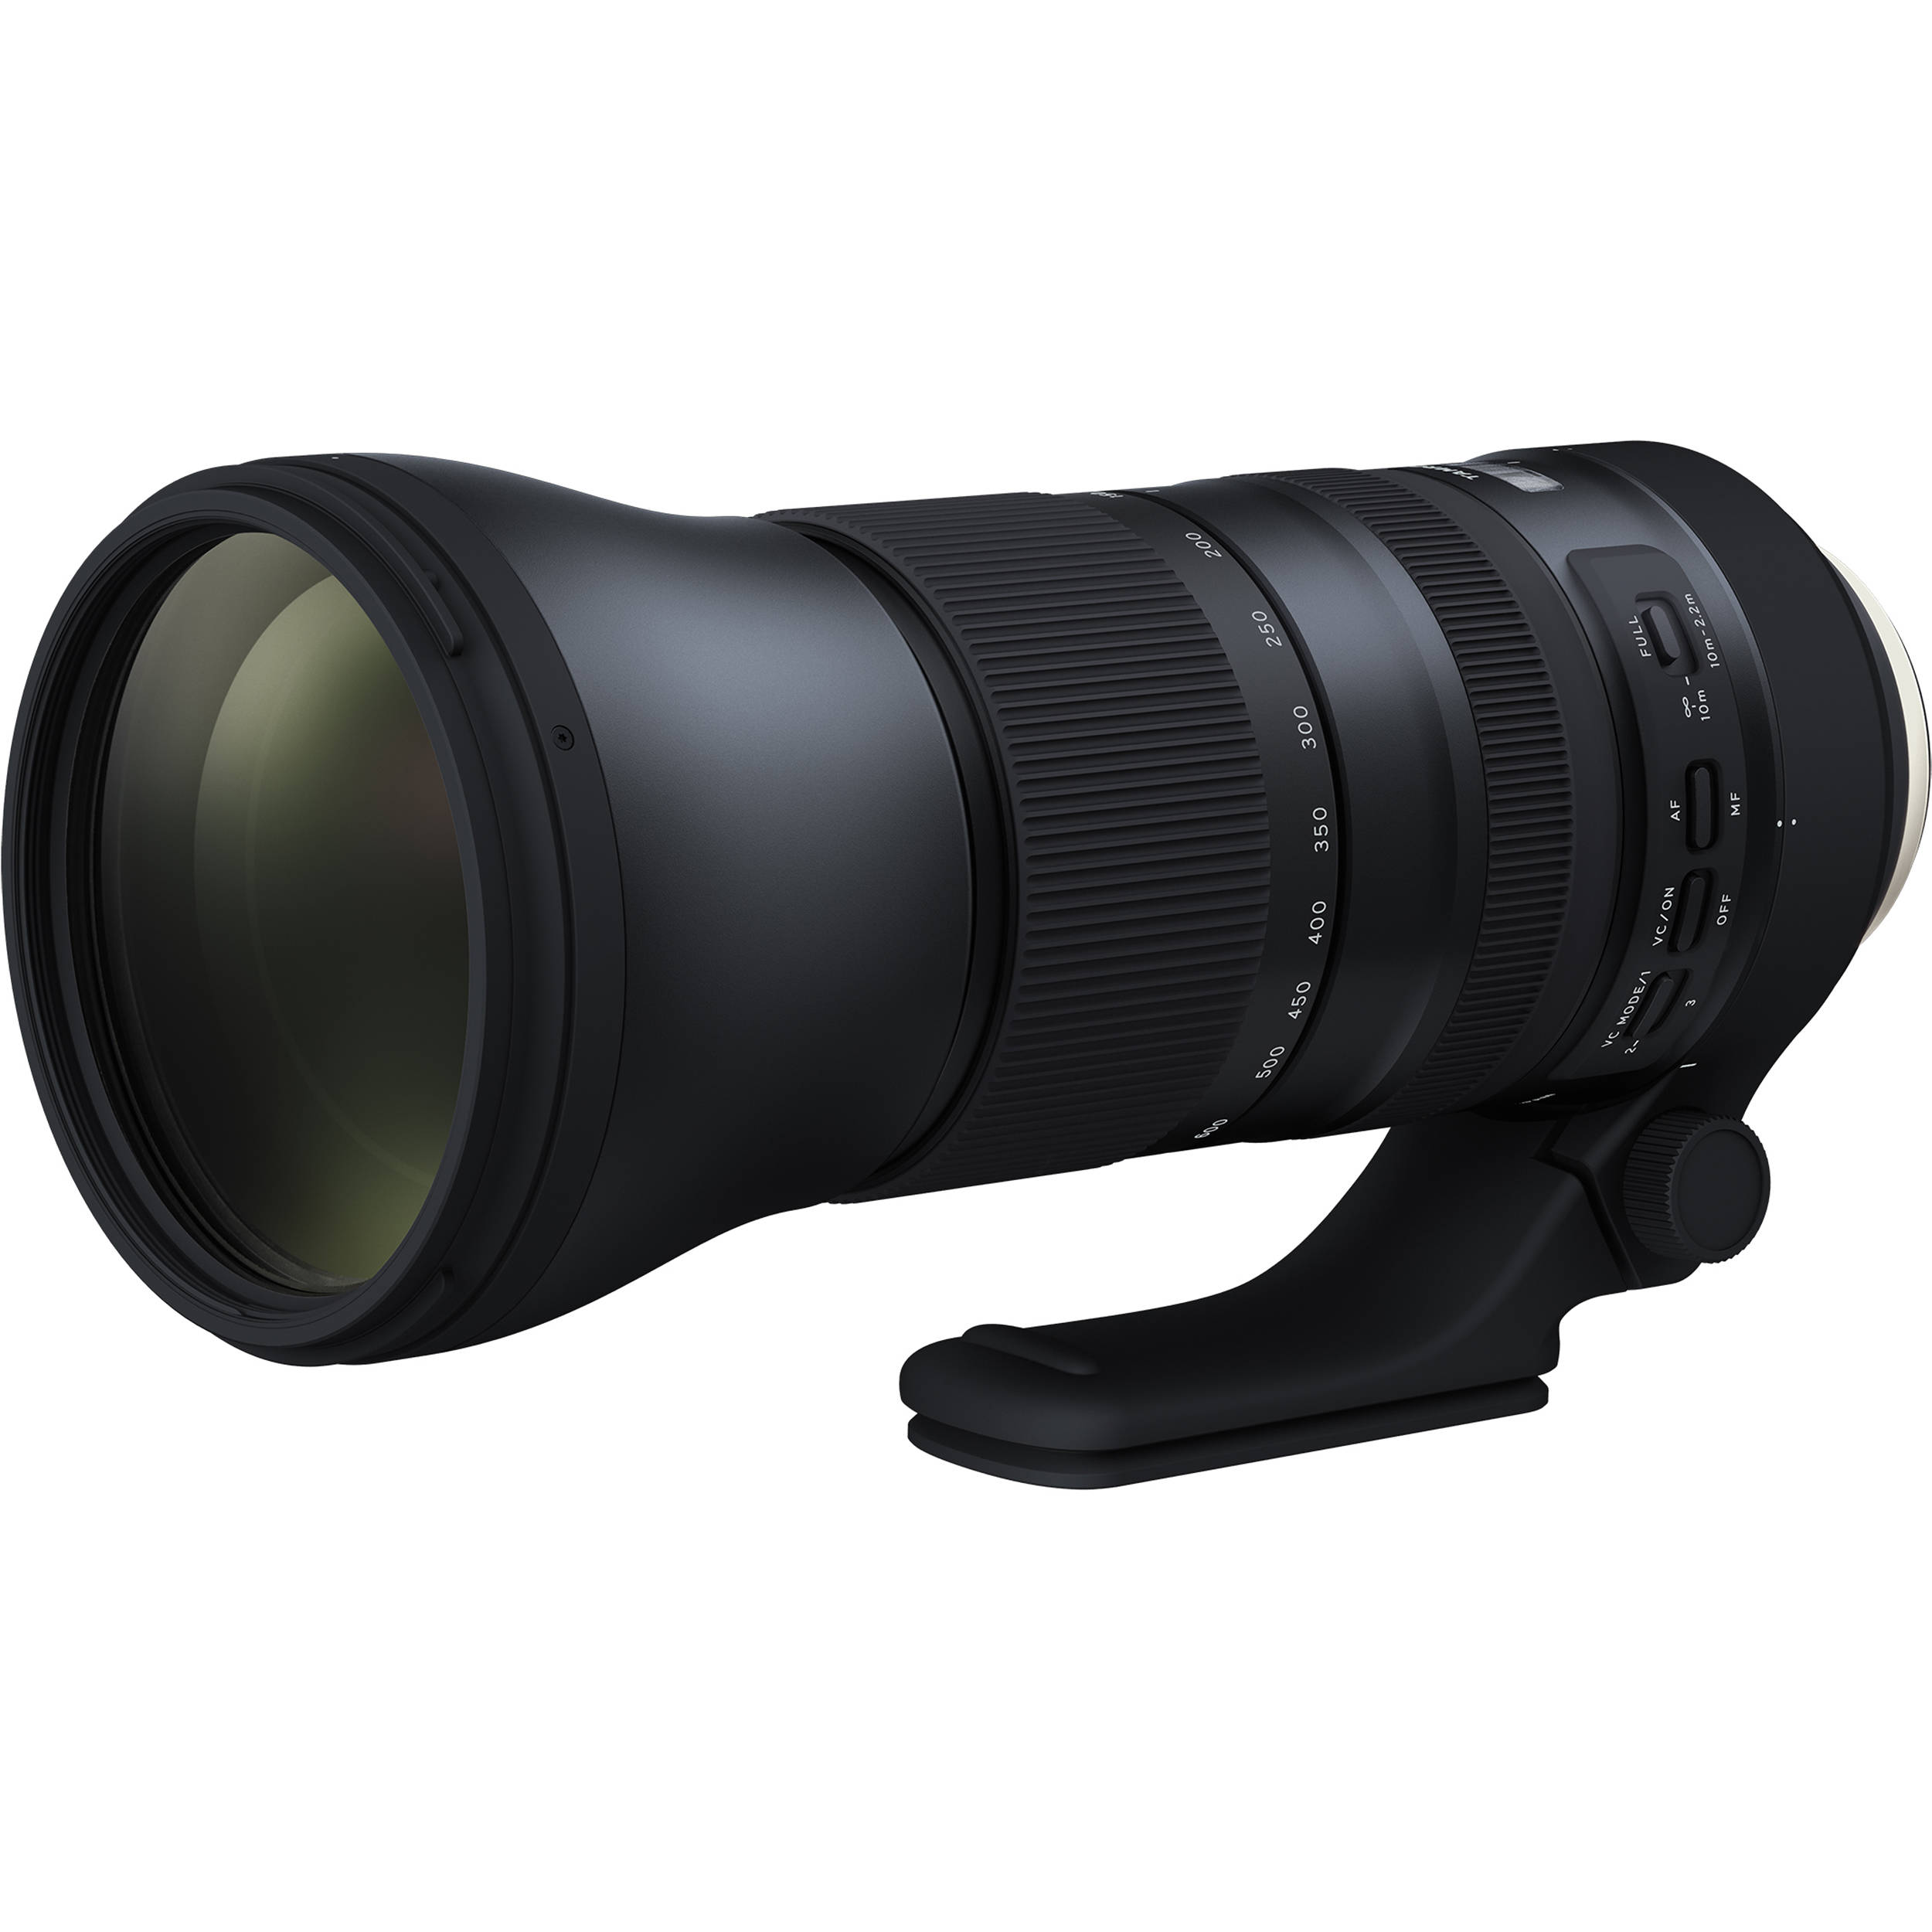 Tamron Sp 150 600mm F 5 63 Di Vc Usd G2 For Canon Ef 18 200mm 35 Iii Eos M